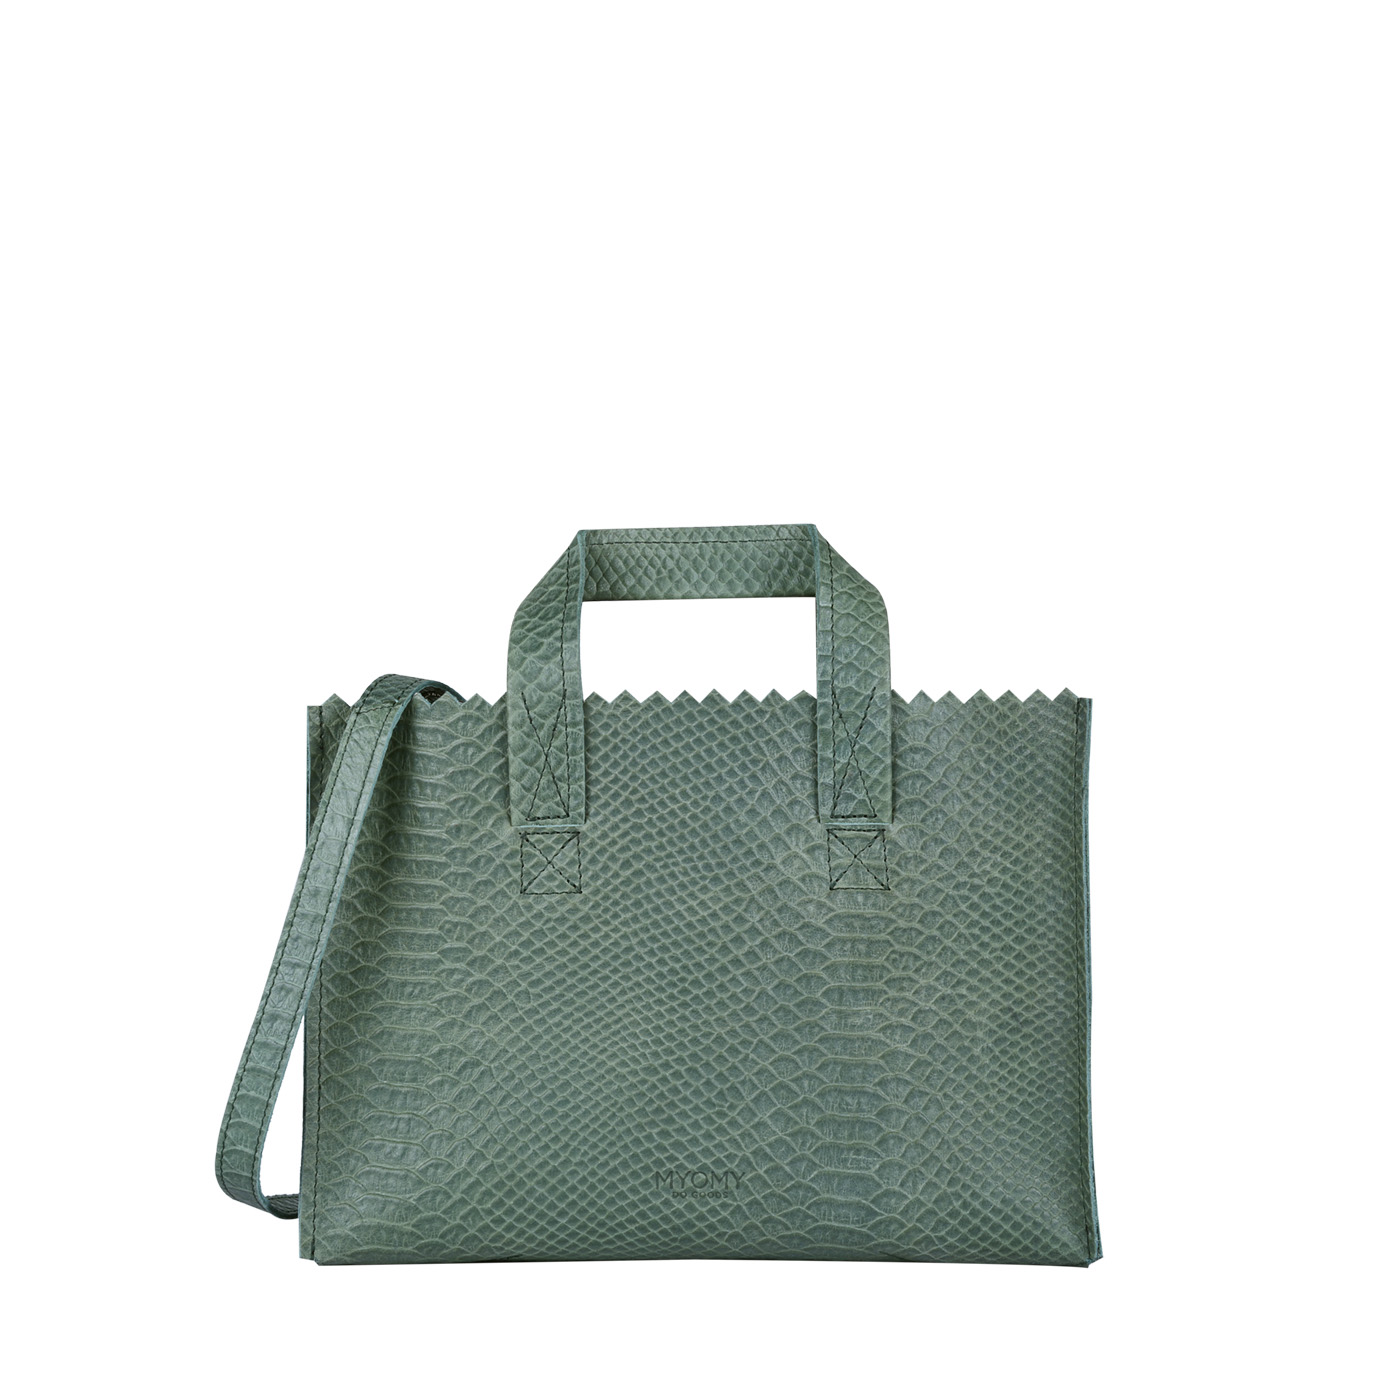 MY PAPER BAG Mini handbag cross-body  - anaconda sea green